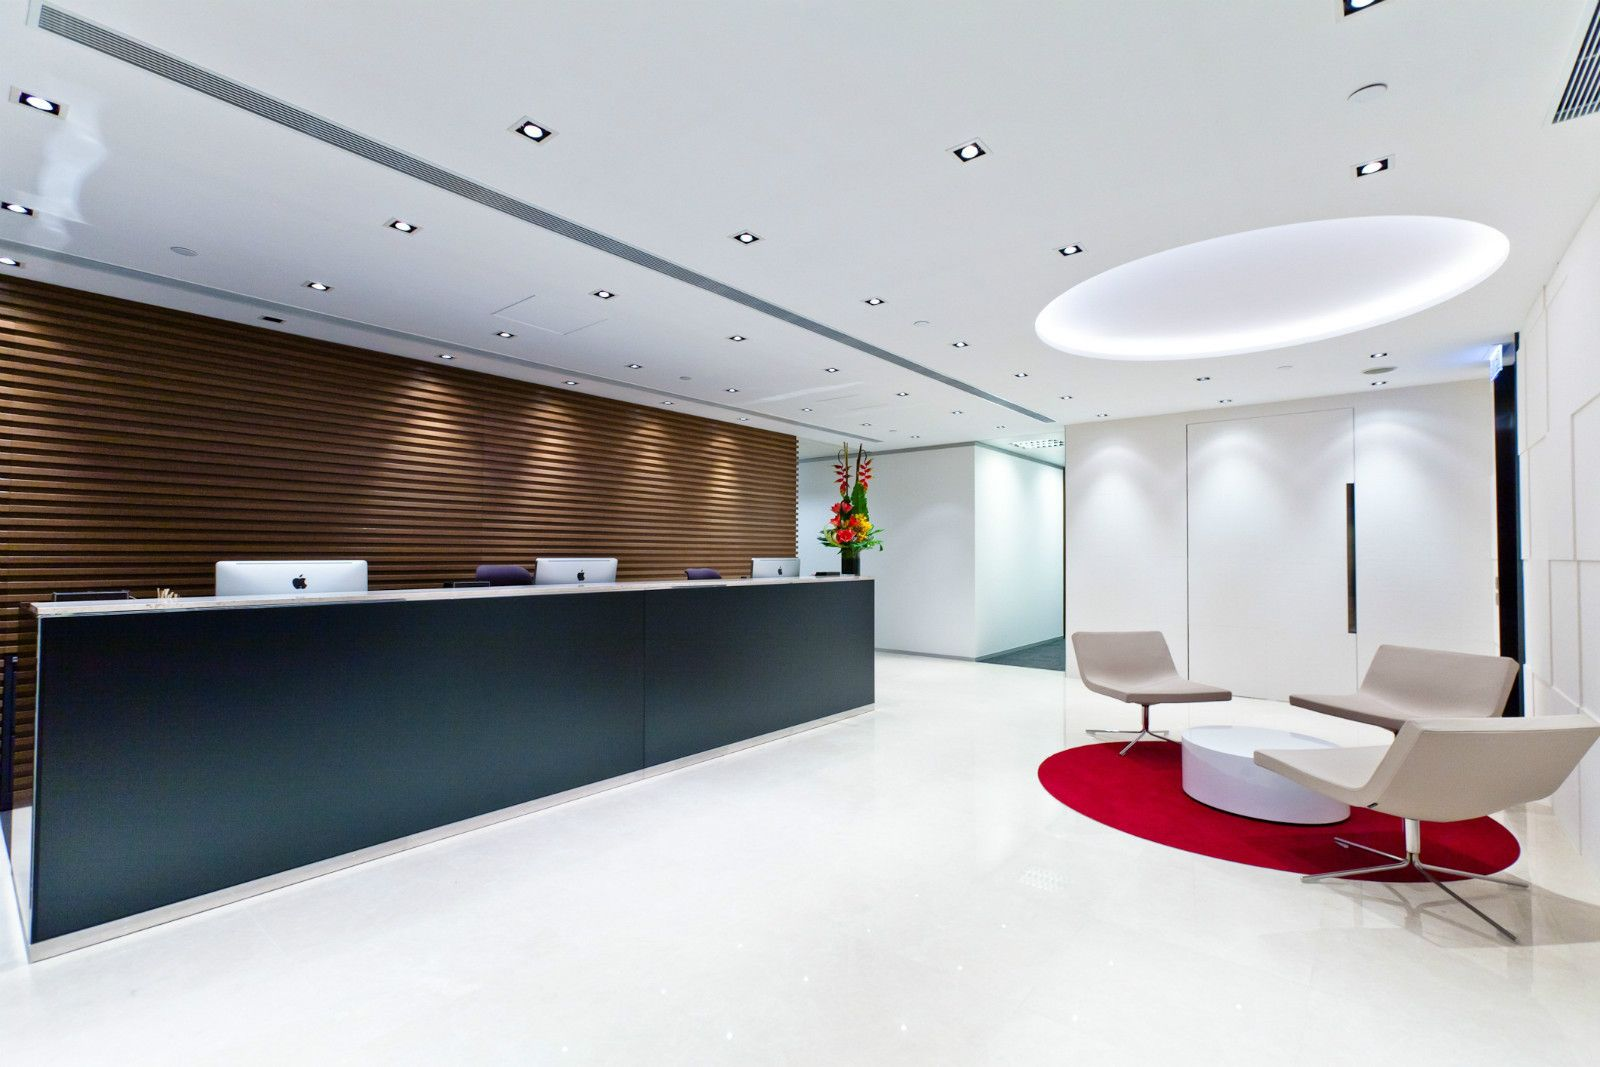 Charming Reception Counter | Project // Sports Brand | Pinterest | Design Awards,  Reception Desks And Interiors